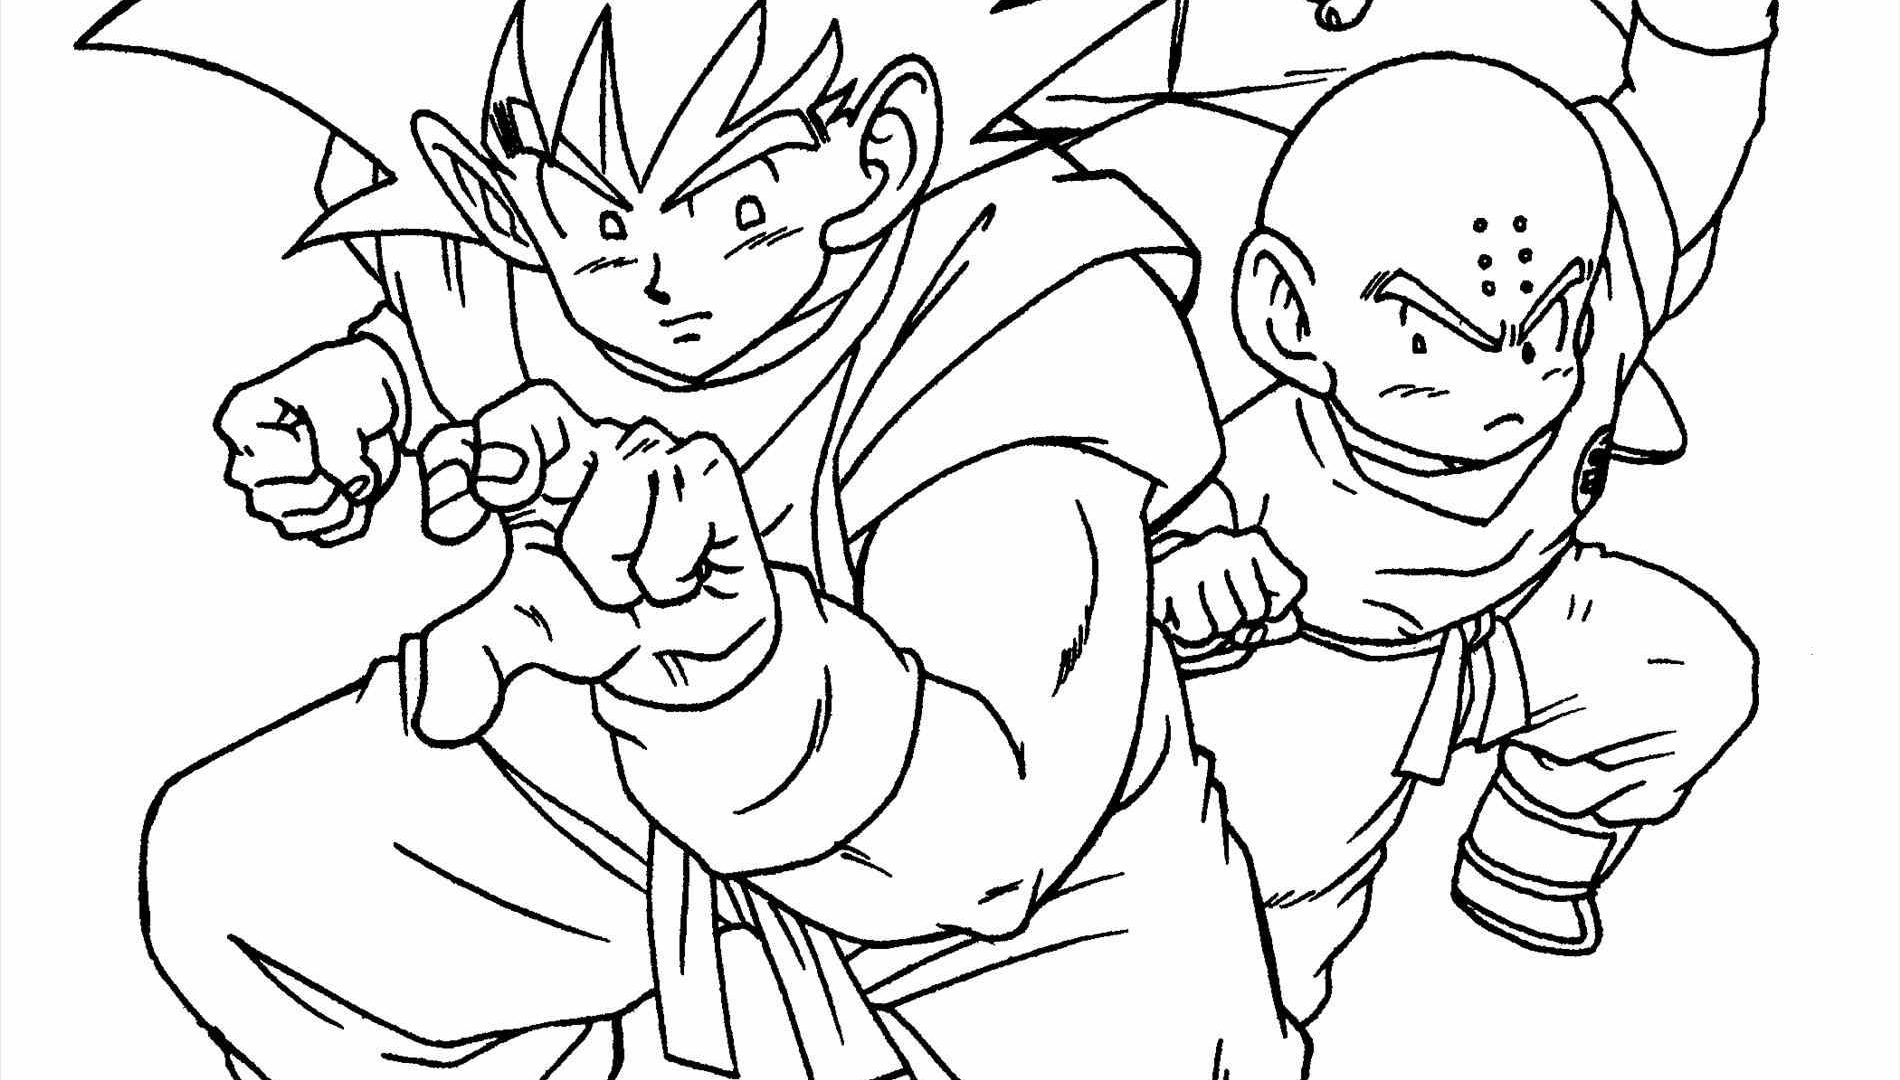 1900x1080 Goten Dragon Ball Z Anime Coloring Pages For Kids Printable Free